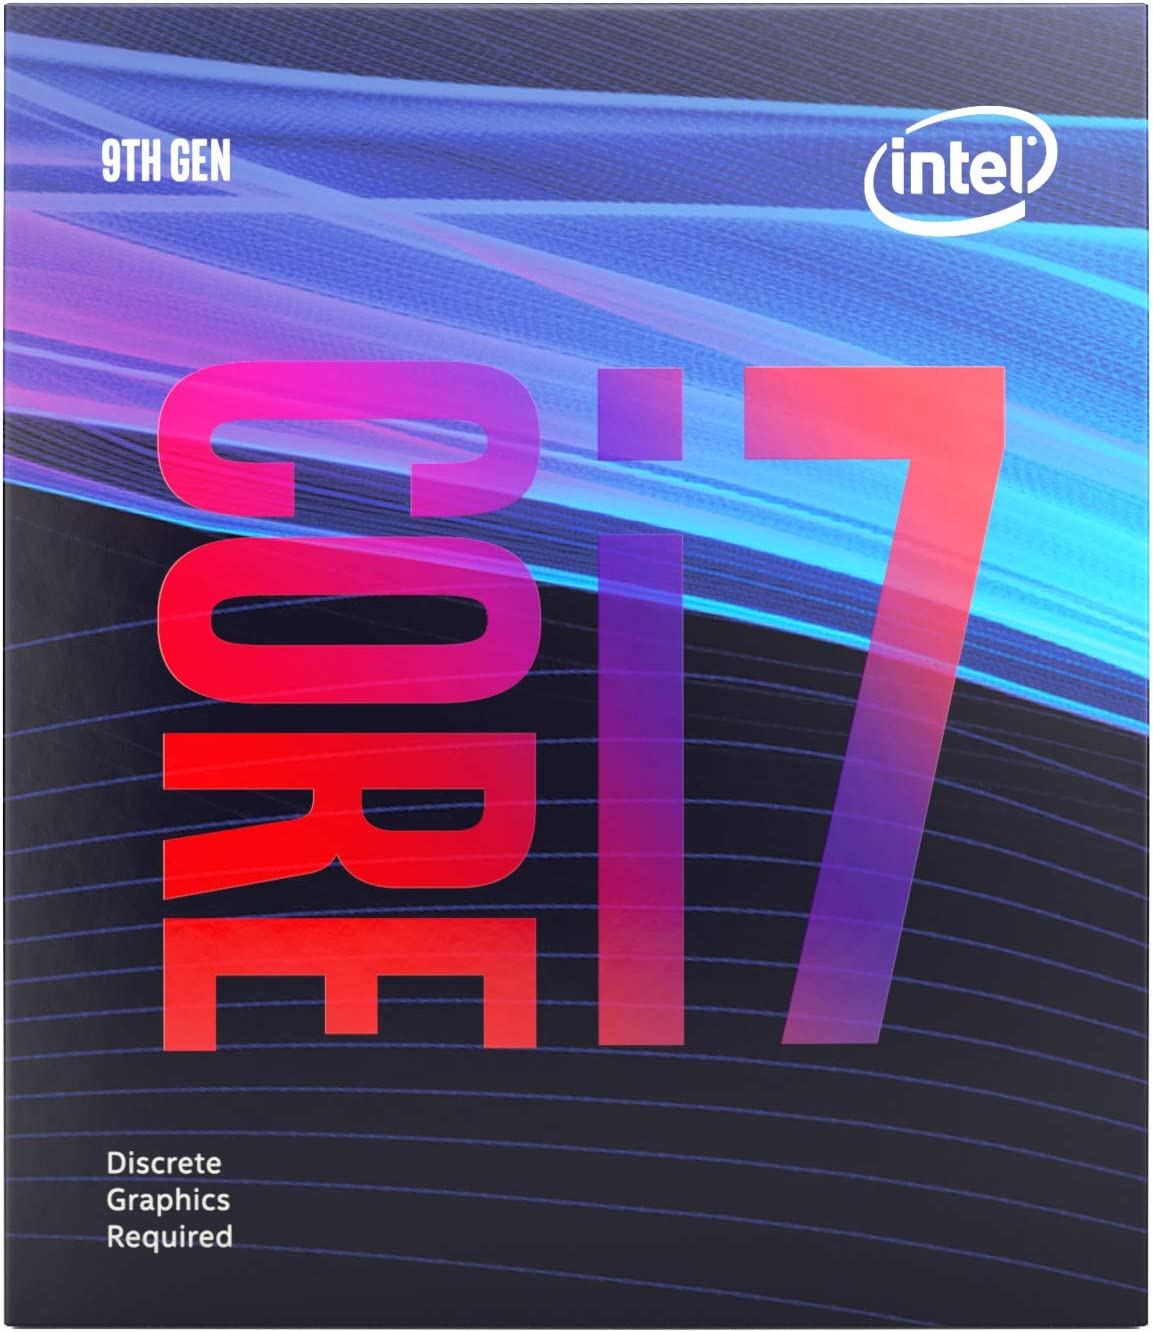 Intel BX80684I79700F Core i7-9700F Desktop Processor 8 Core Up to 4.7 GHz Without Processor Graphics LGA1151 300 Series 65W